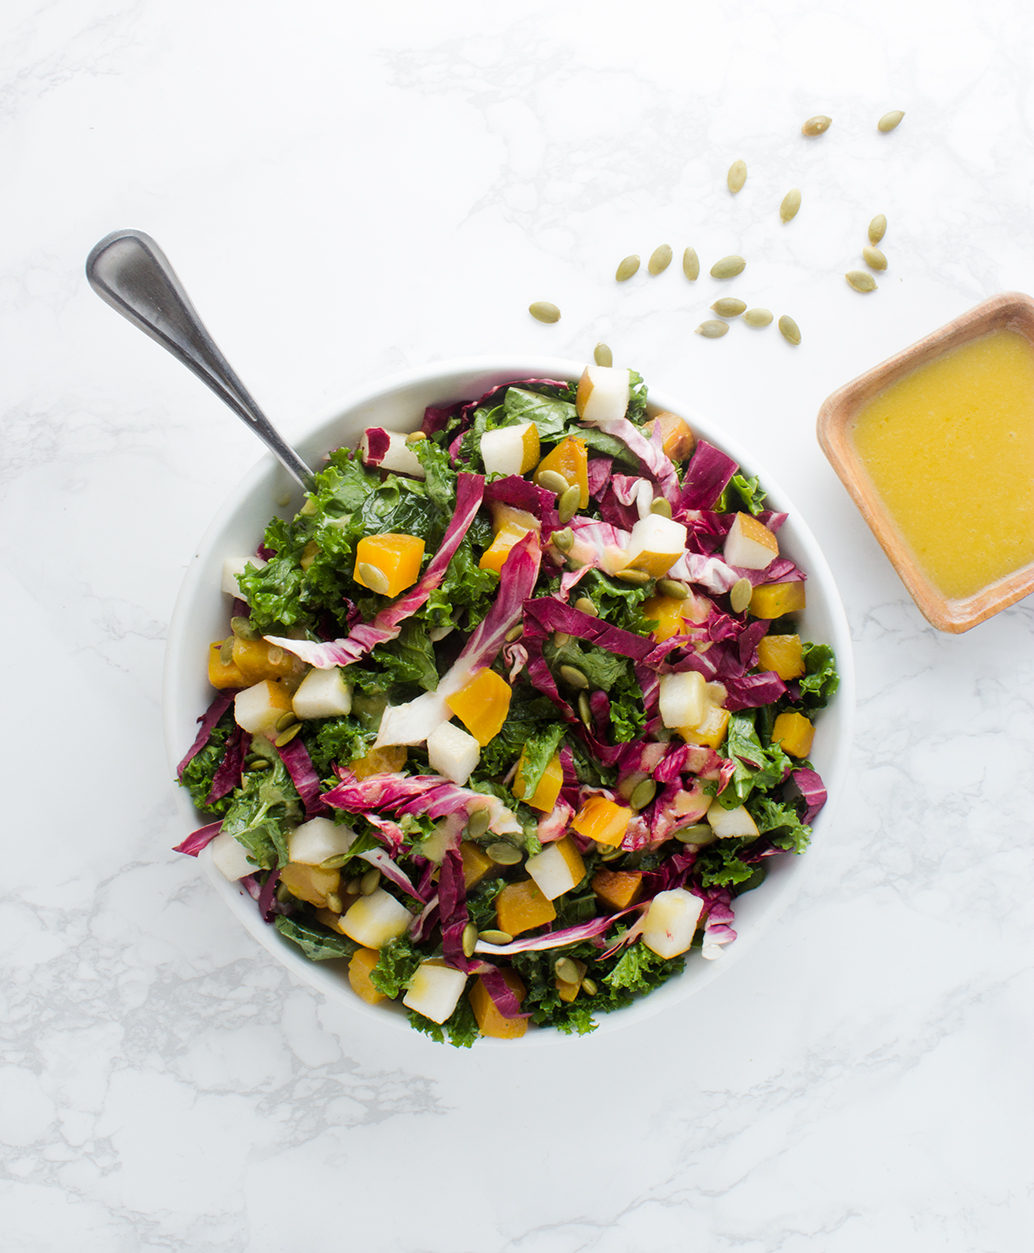 This Asian Pear, Beet and Kale Salad is perfect for those lingering warm, late summer days.